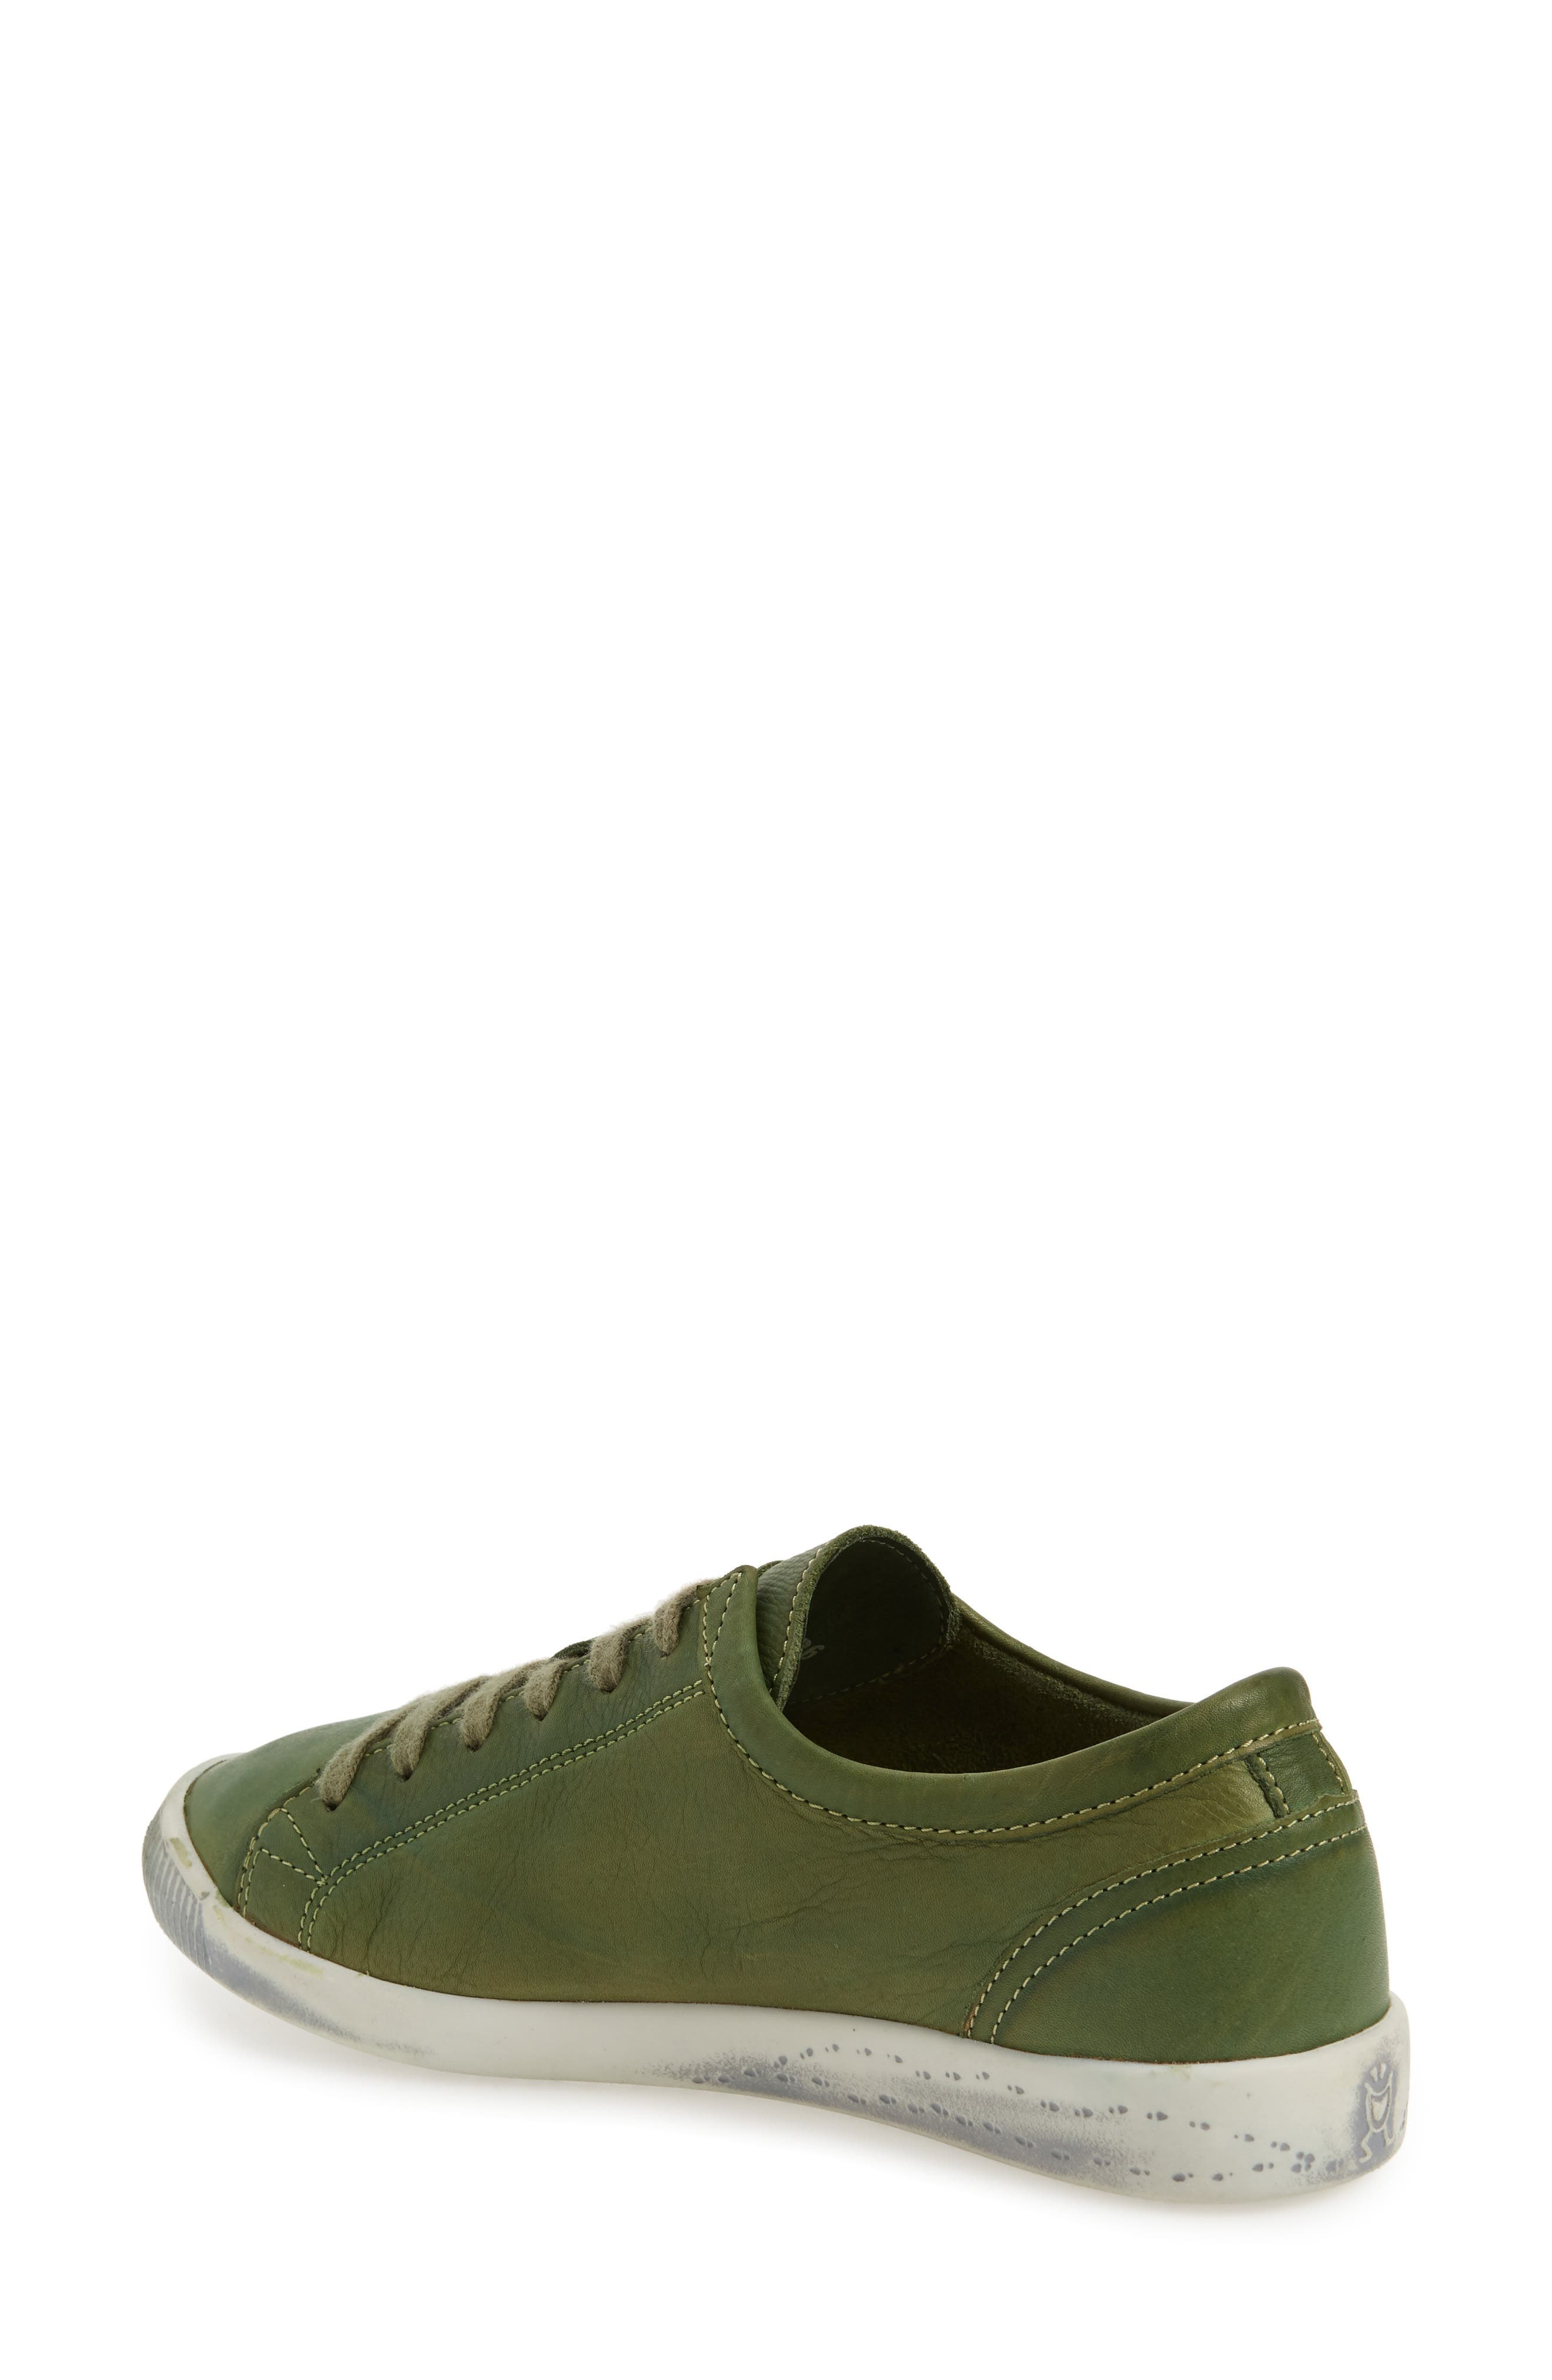 Isla Distressed Sneaker,                             Alternate thumbnail 2, color,                             Forest Green Washed Leather